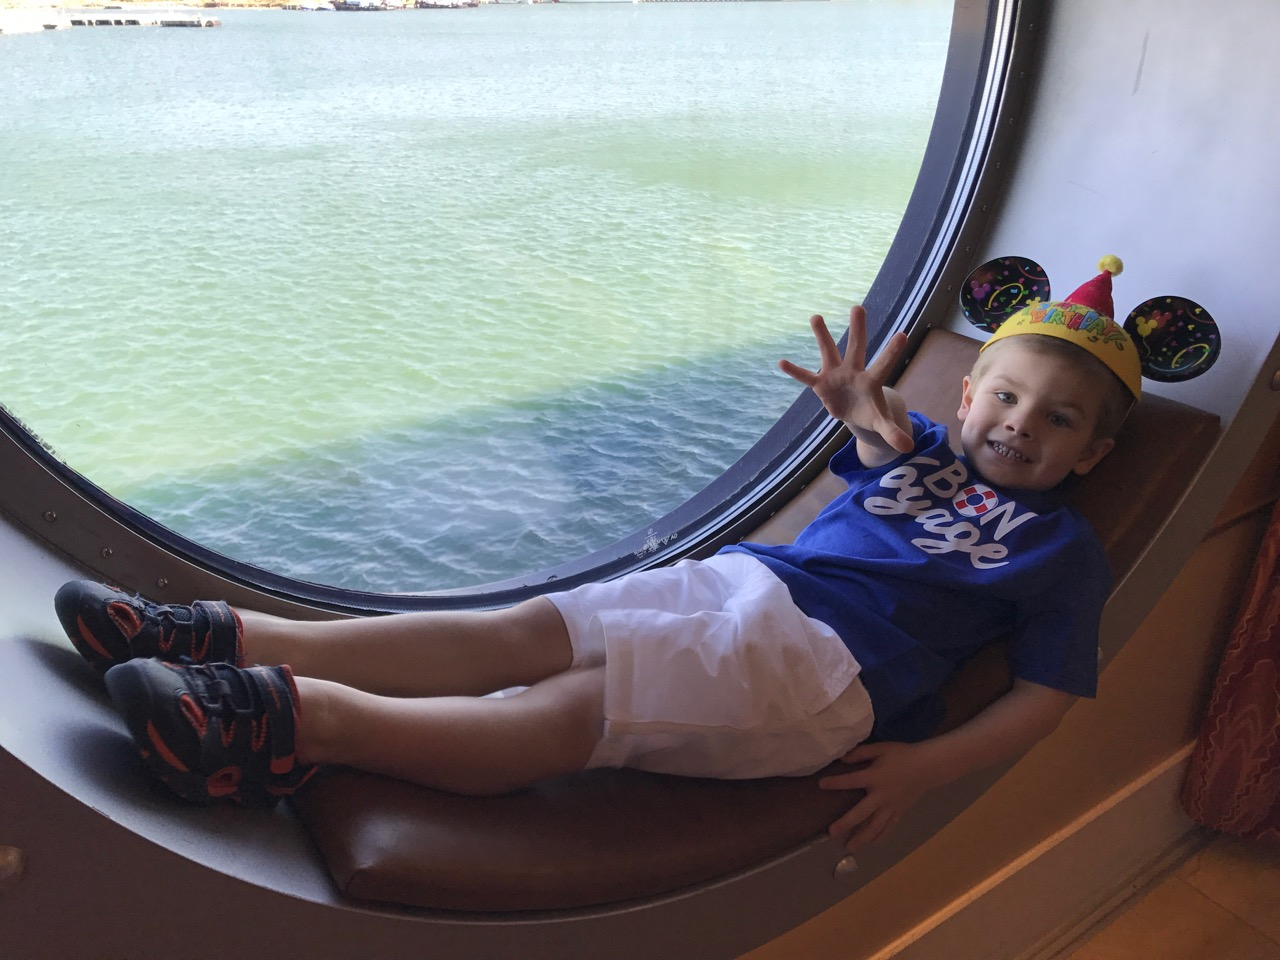 2017 Disney Dream 3 Night Bahamas Cruise – Sawyer's 5th ...